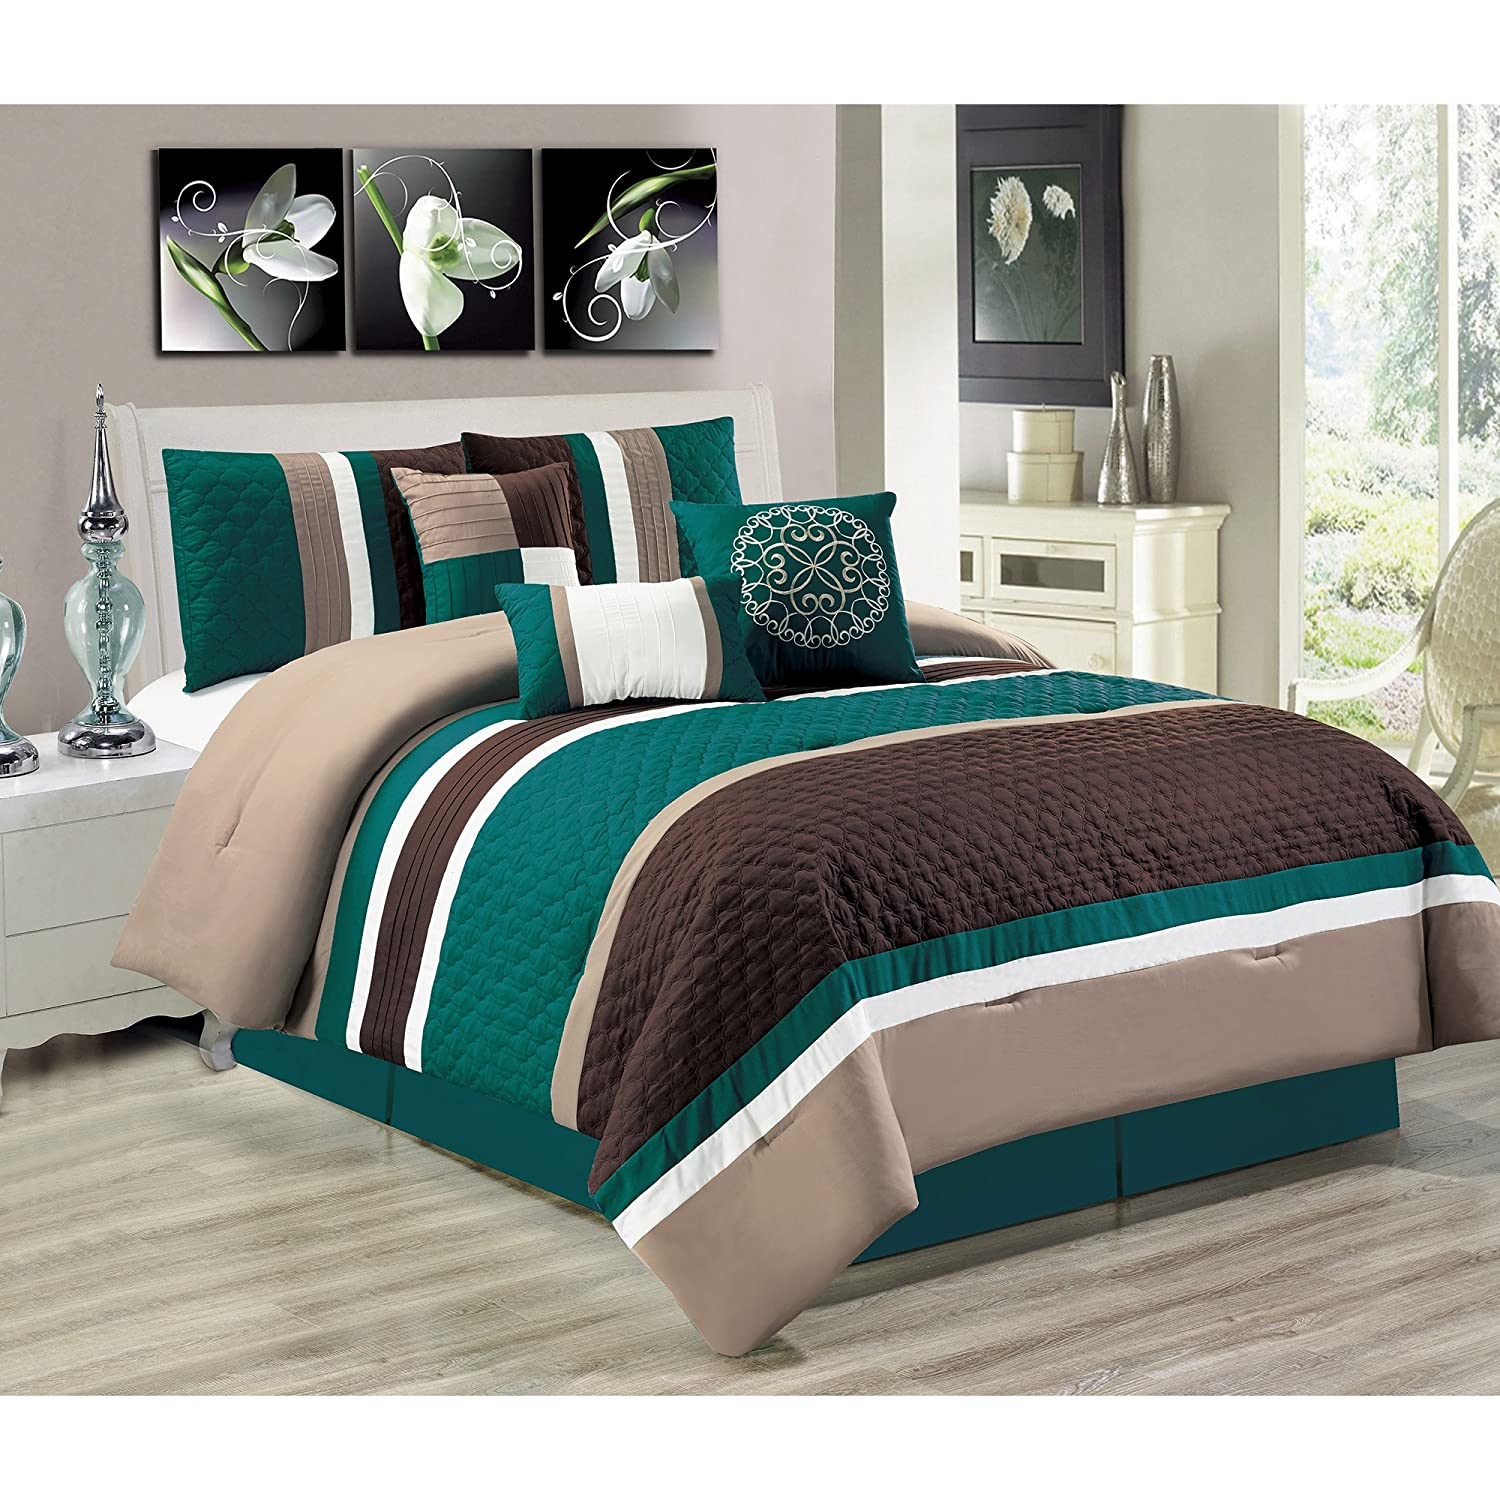 Safdie & Co. Cameron Collection 7 Piece Comforter Set, King 60506.7K.82